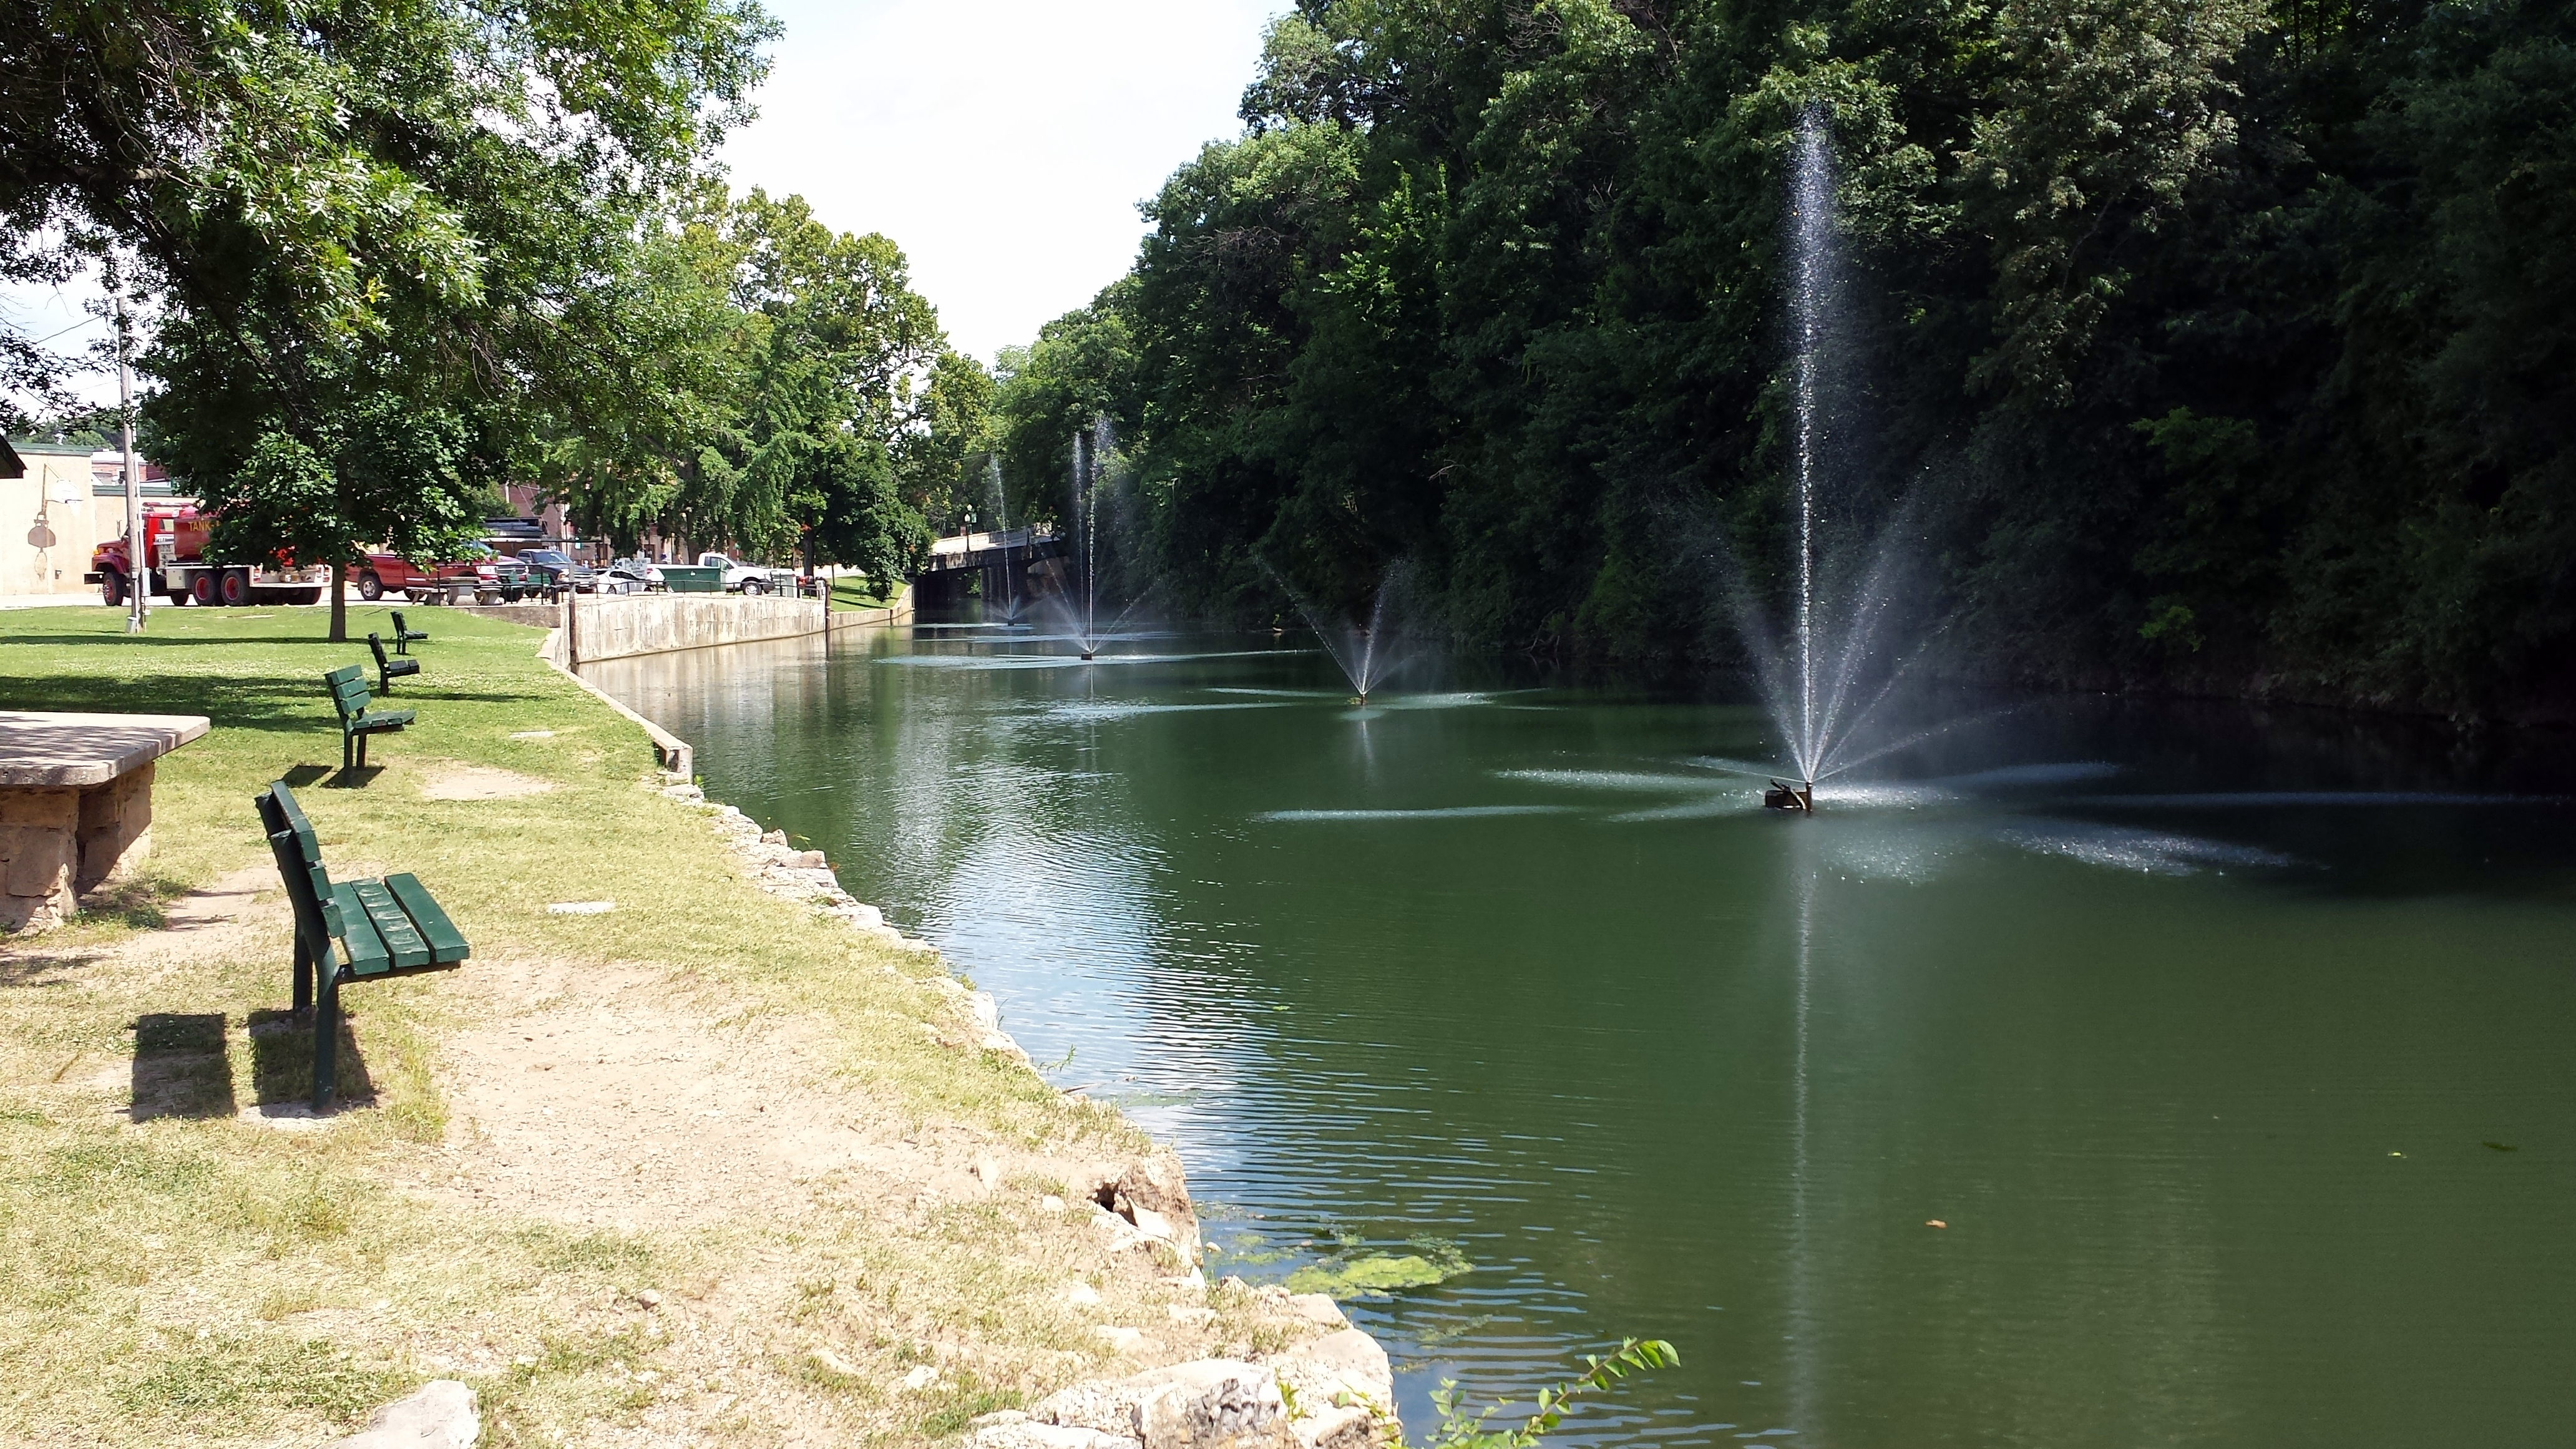 Discount hotels and attractions in Siloam Springs,